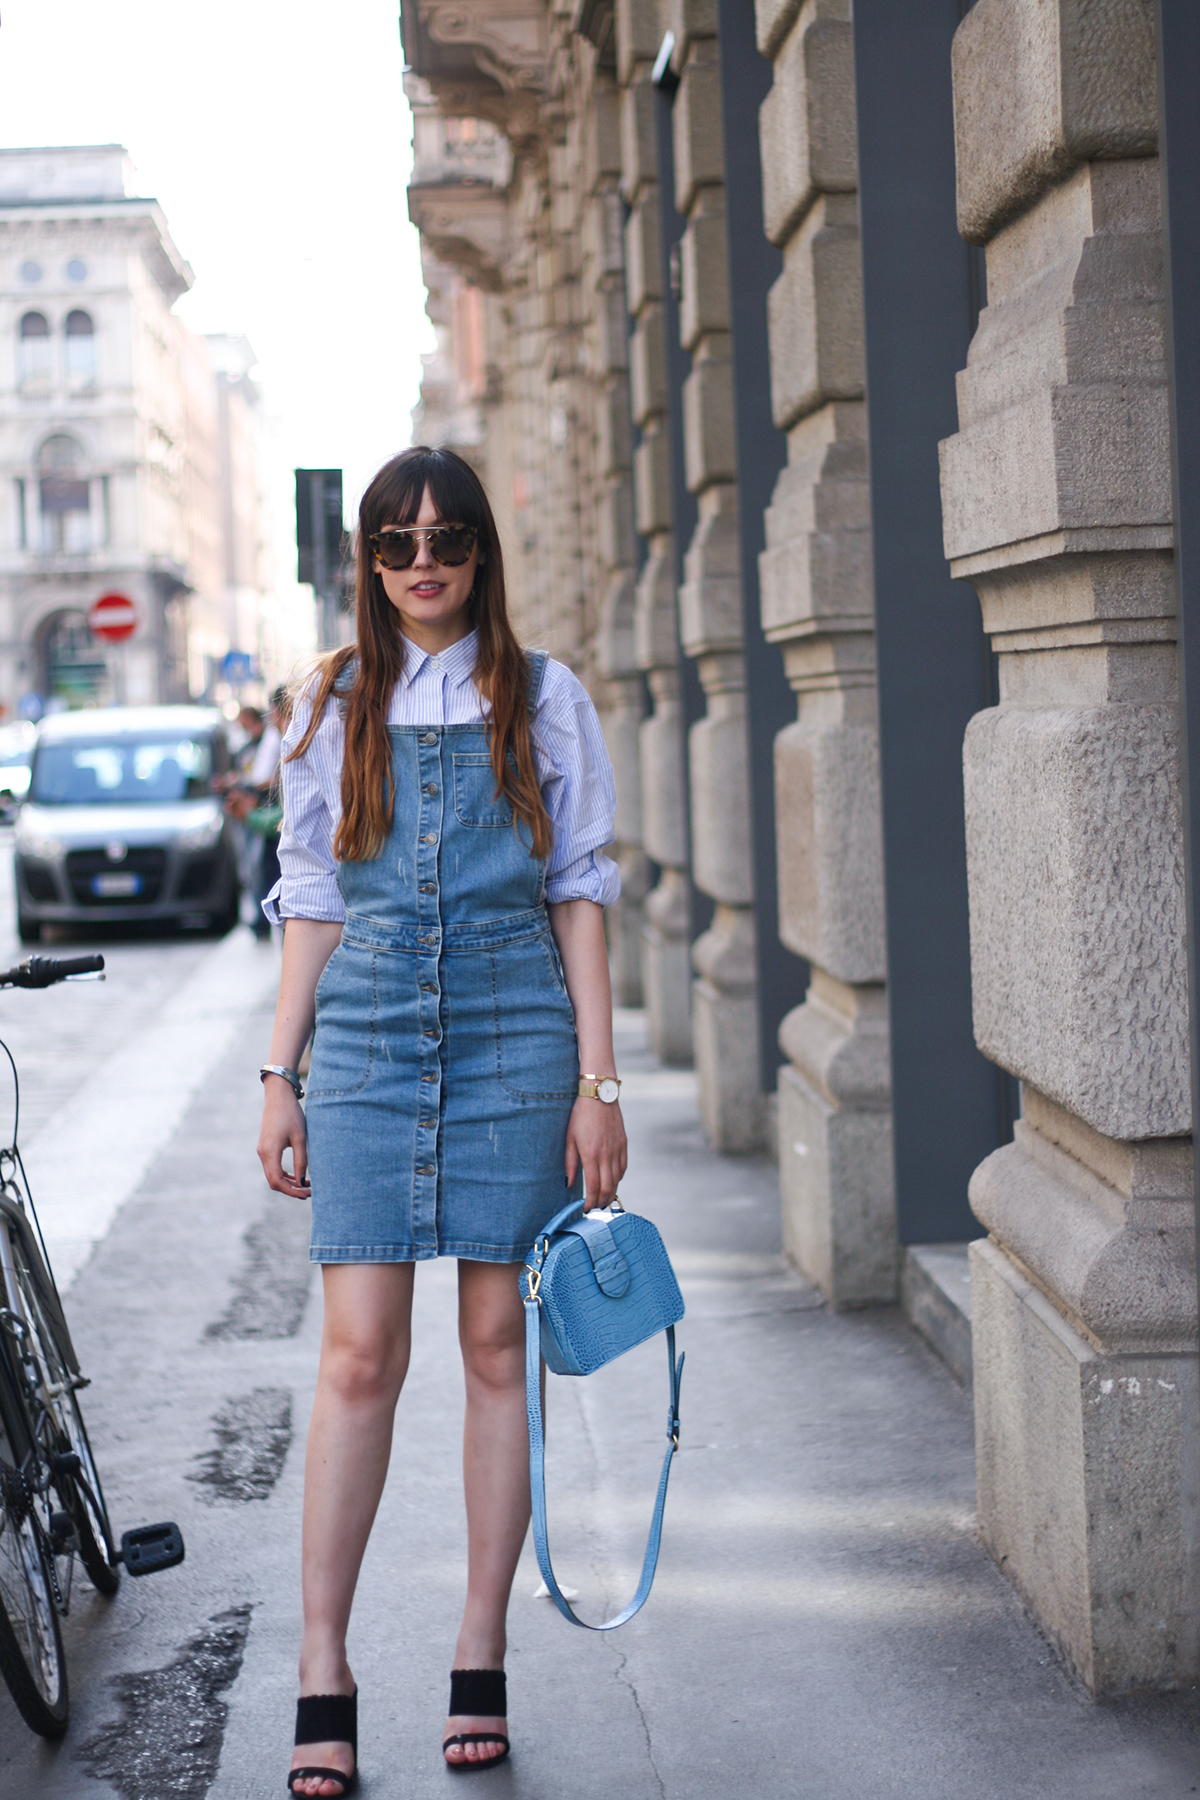 denim-dungaree-dress-spring-outfit-fashion-blogger-8